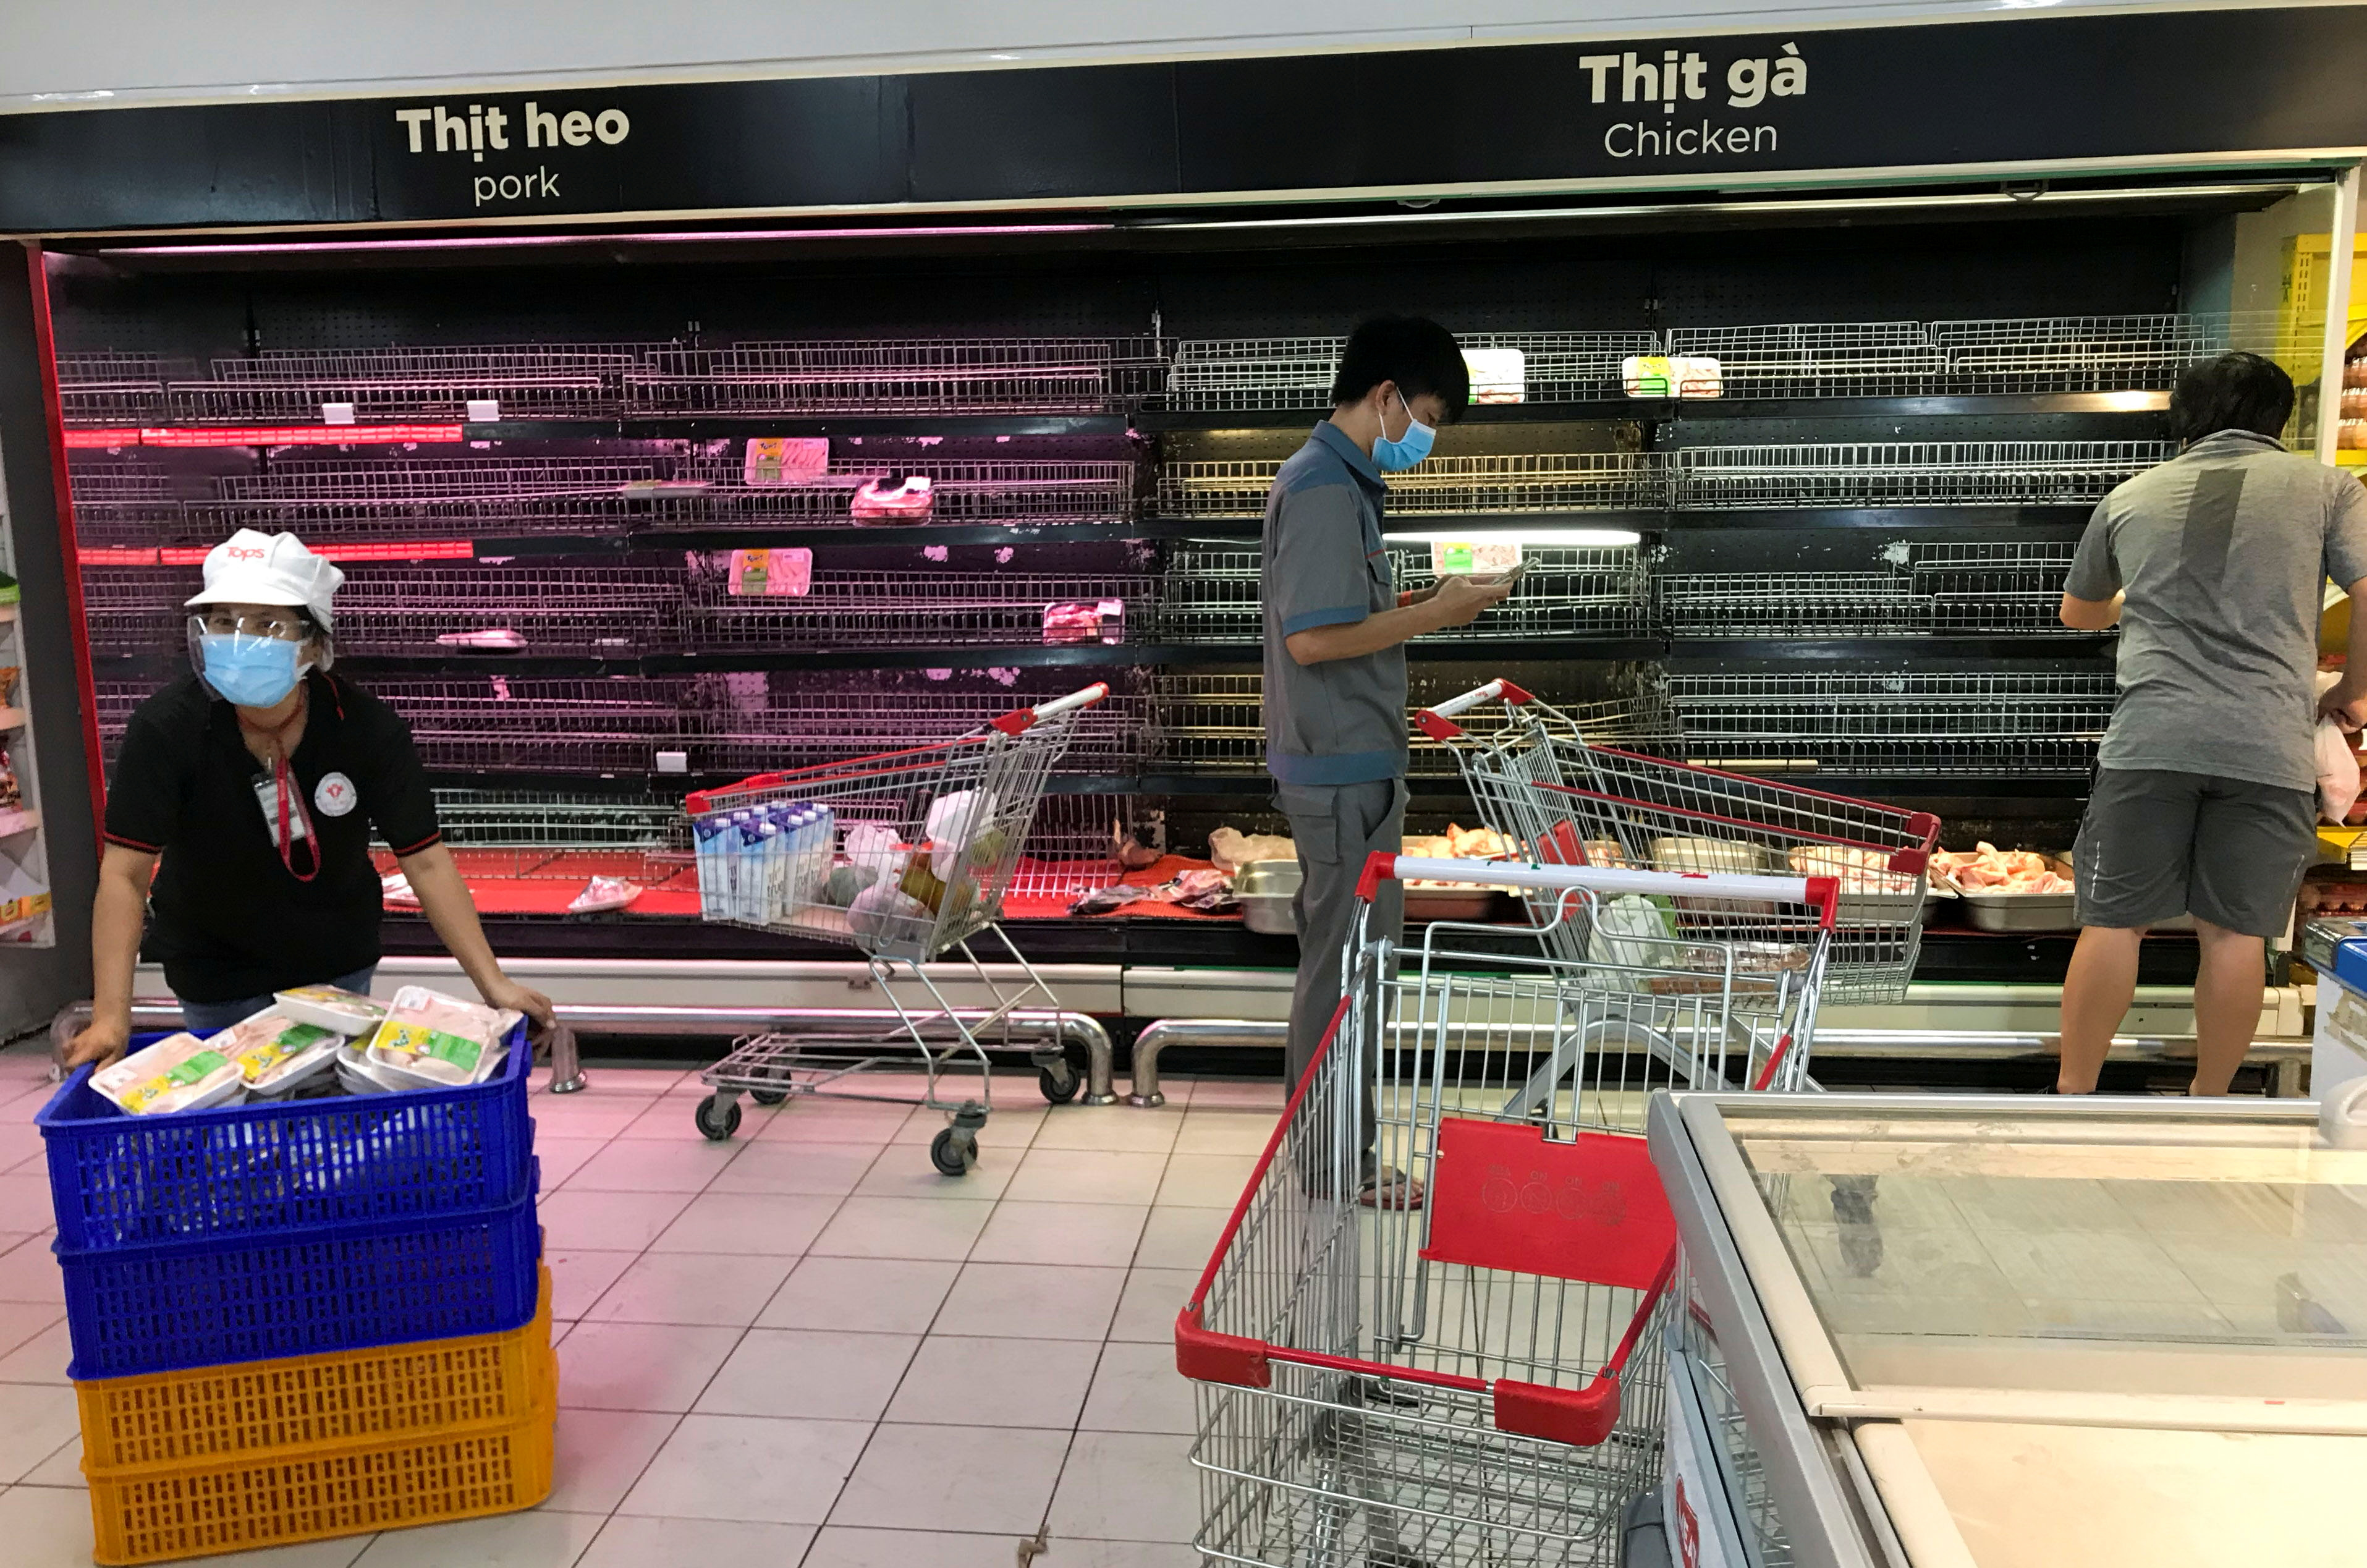 Customers search for food on near empty shelves that were depleted due to panic buying amid the coronavirus disease (COVID-19) pandemic in Ho Chi Minh City, Vietnam August 21, 2021. REUTERS/Stringer